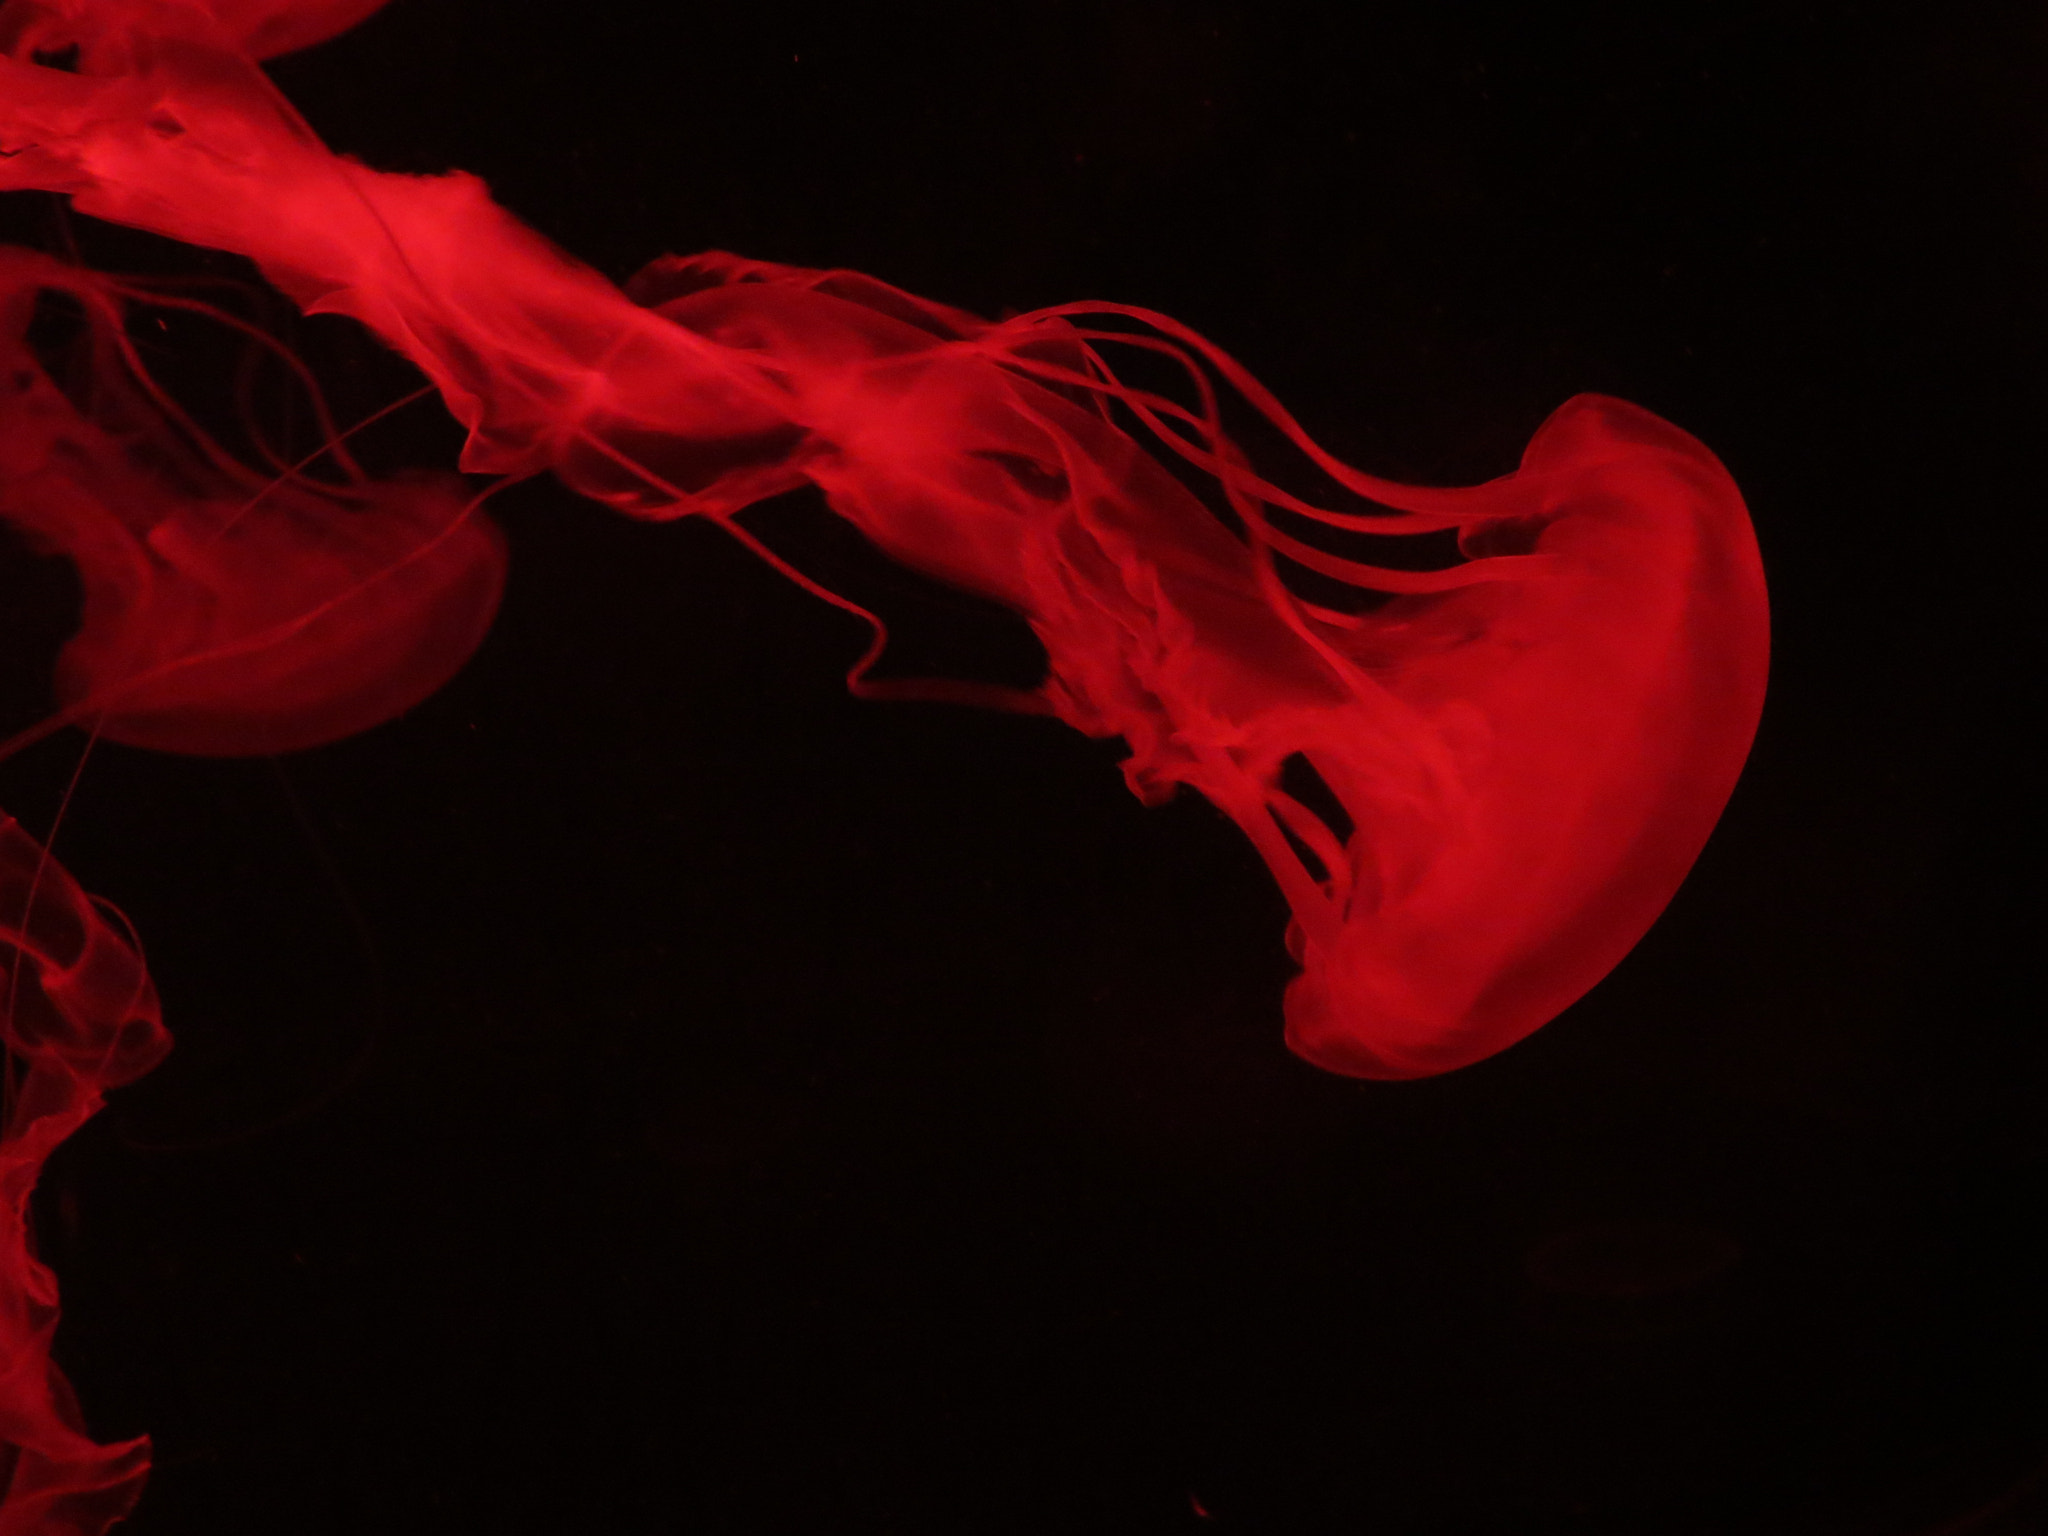 Photograph Jellyfish in red by itzik kleiman on 500px